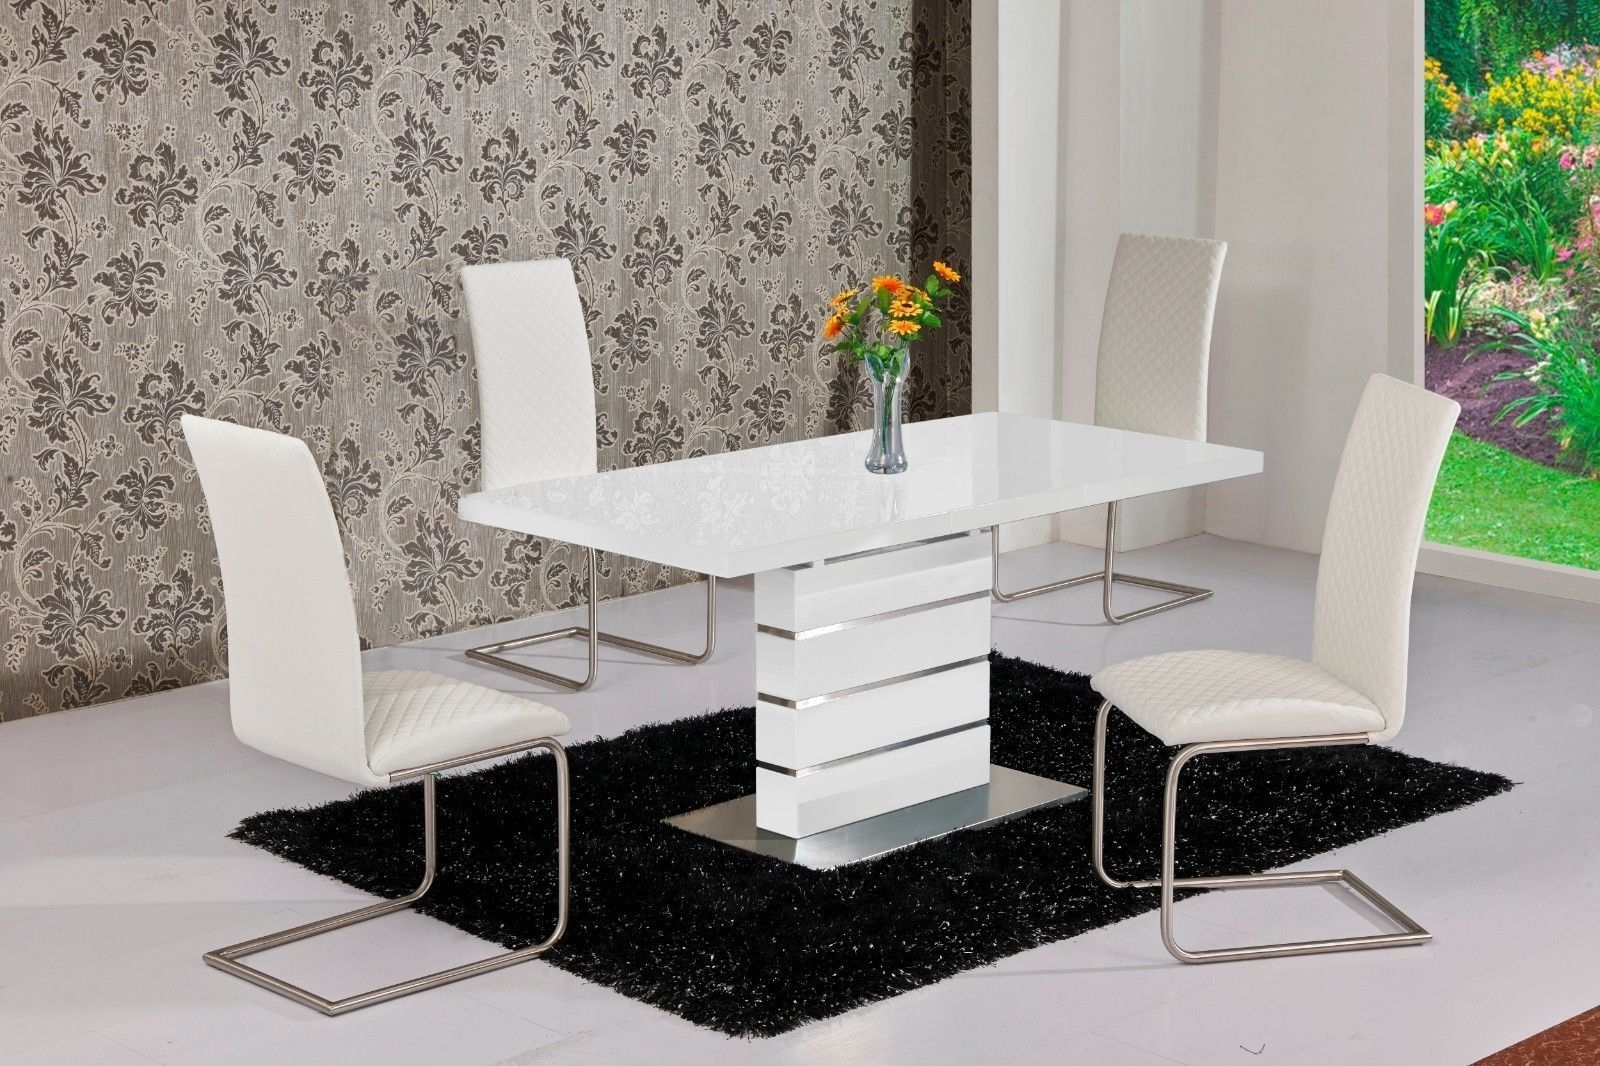 Mace High Gloss Extending 120 160 Dining Table & Chair Set – White Intended For Current Dining Table Chair Sets (View 6 of 25)